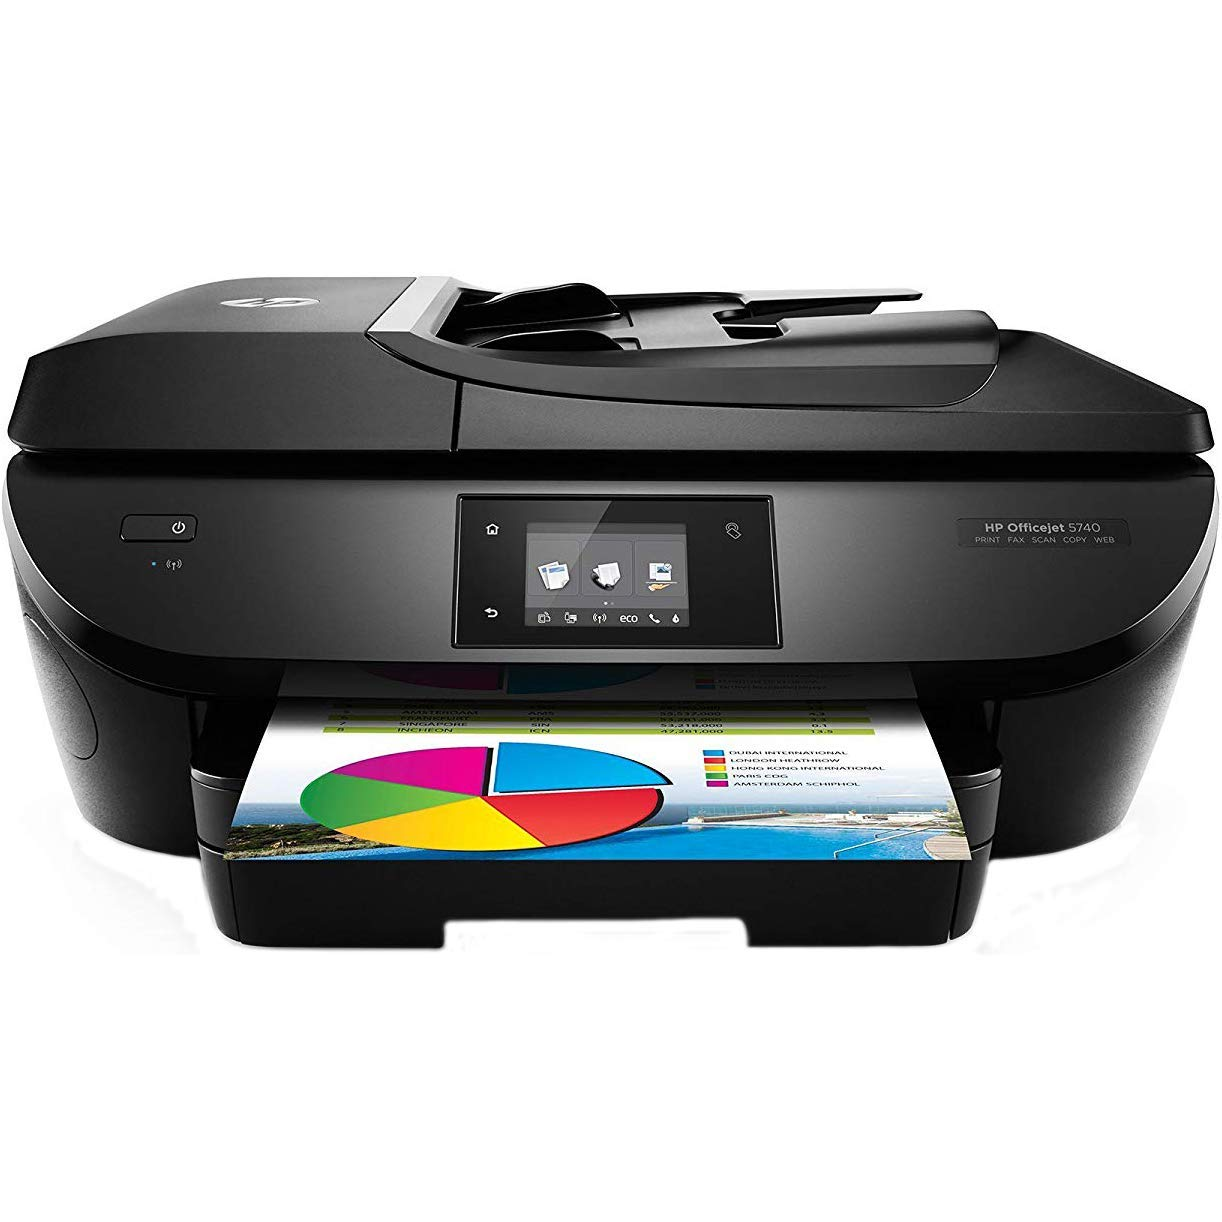 HP OfficeJet 5740 Wireless All-in-One Photo Printer with Mobile Printing, Instant Ink ready (Renewed) by Generic